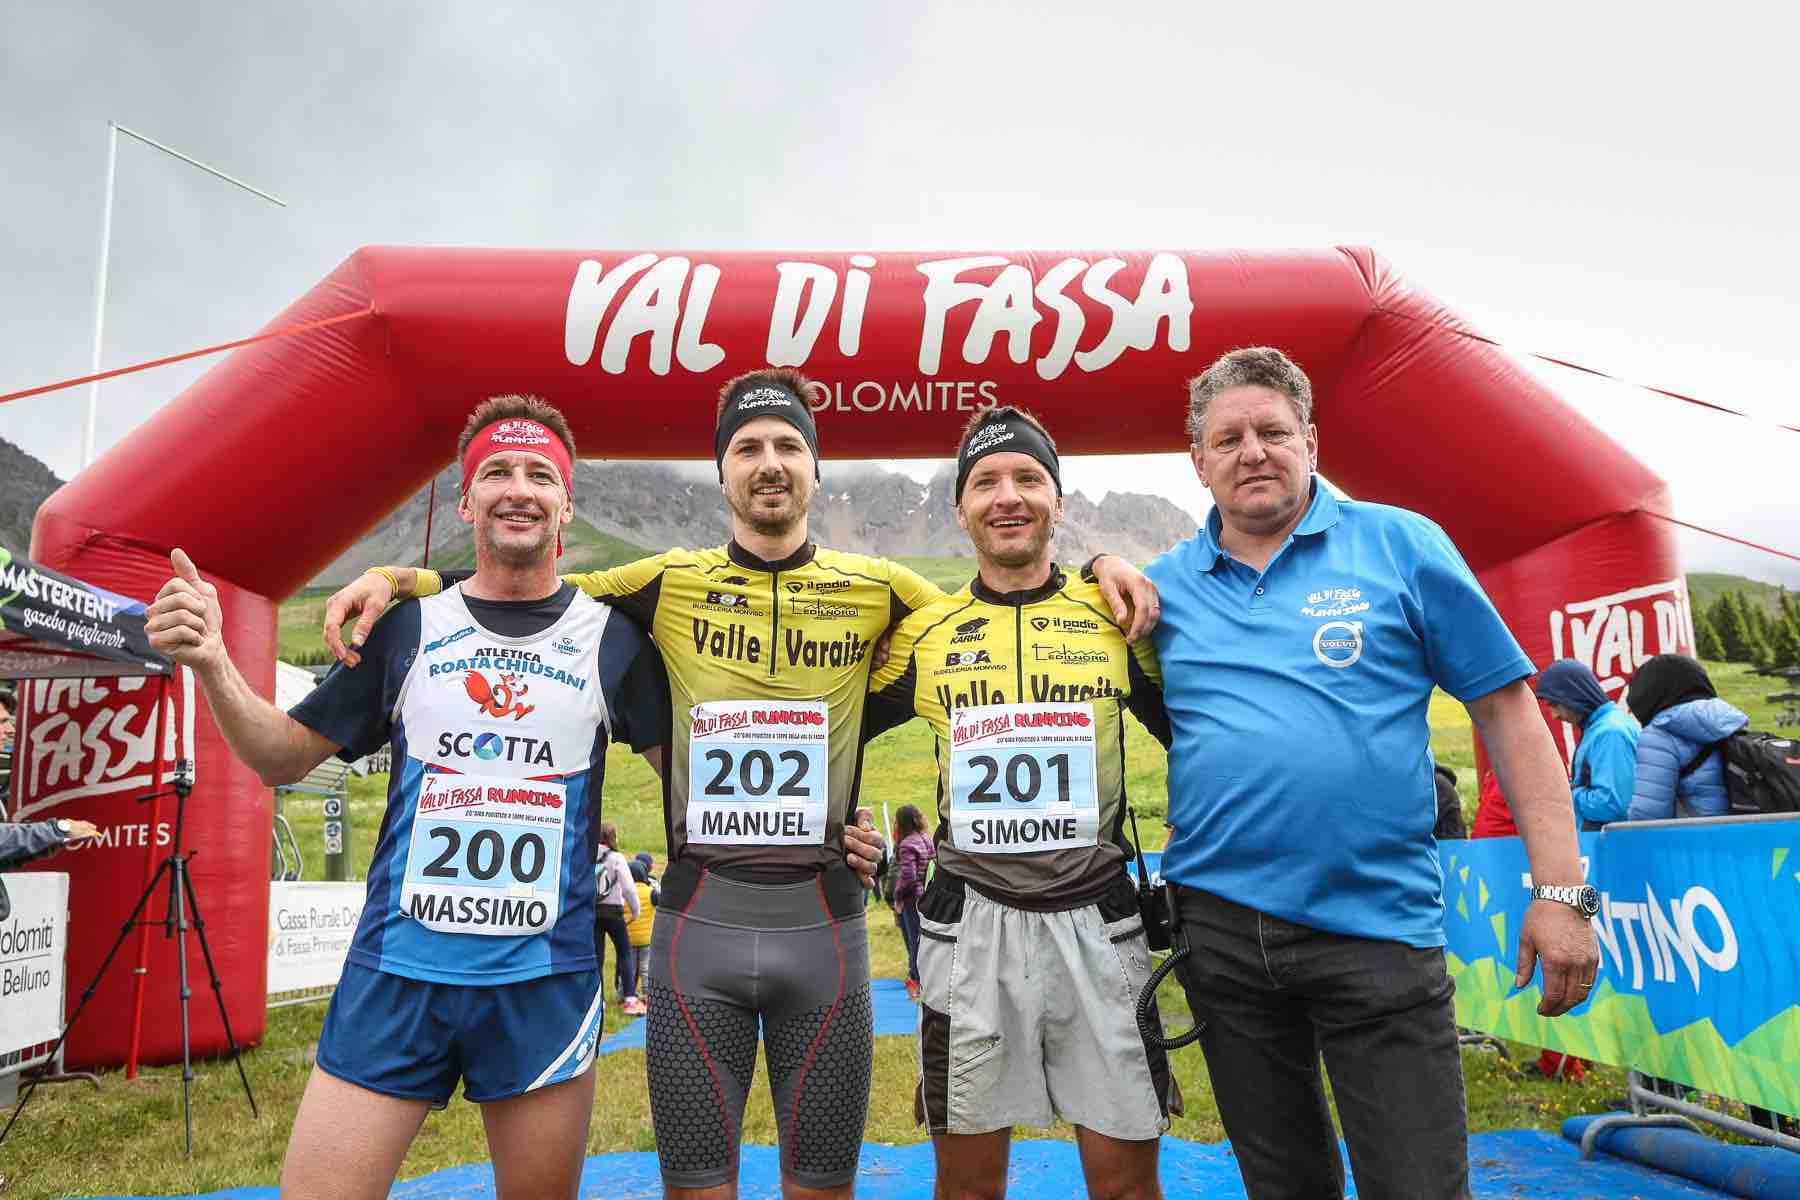 Day 2 - Podio Maschile Val di Fassa Running 2018